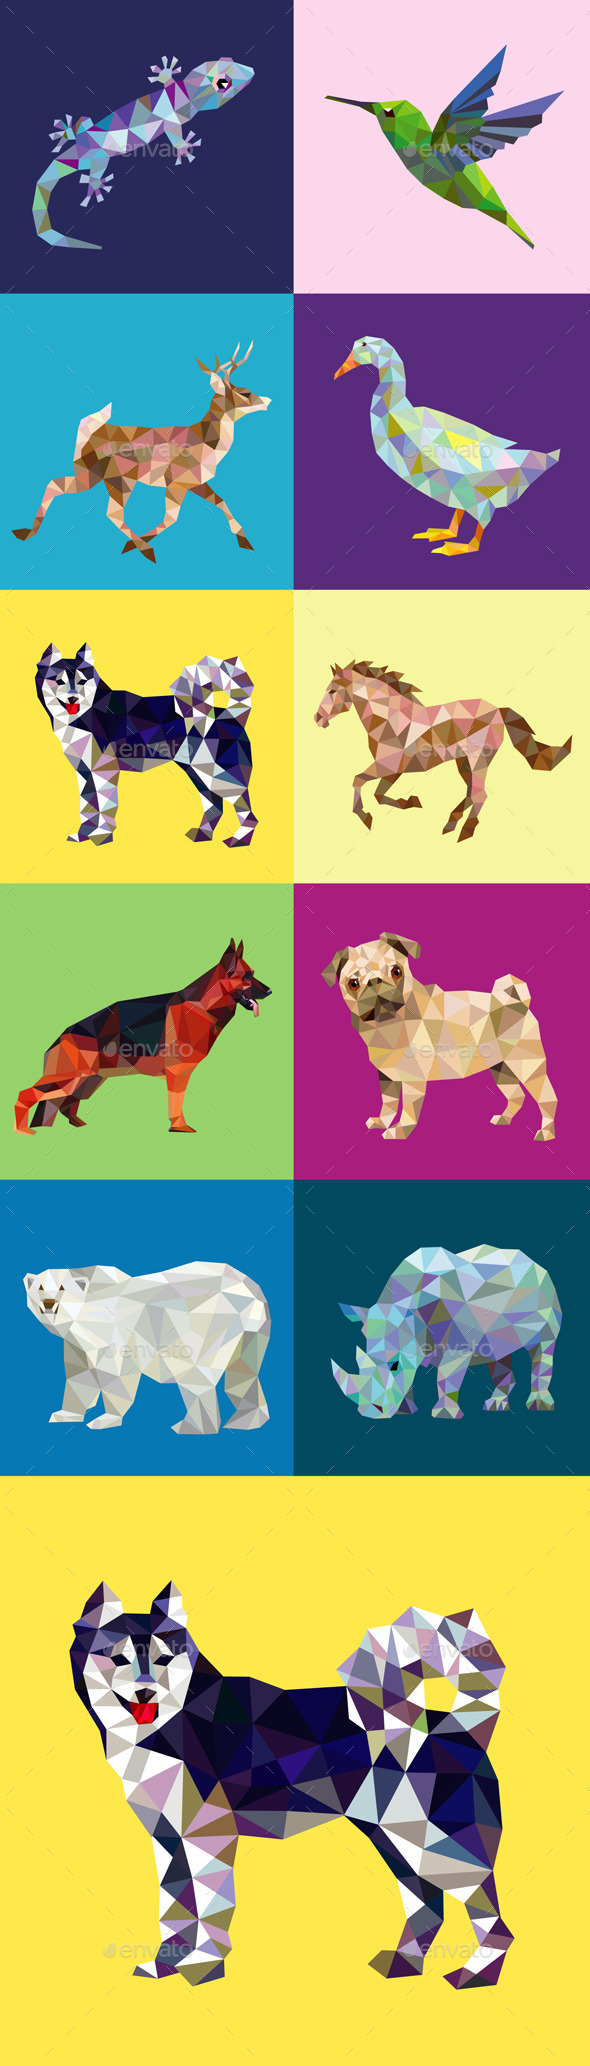 GraphicRiver 10 Low Poly Animal Series 2 9768374